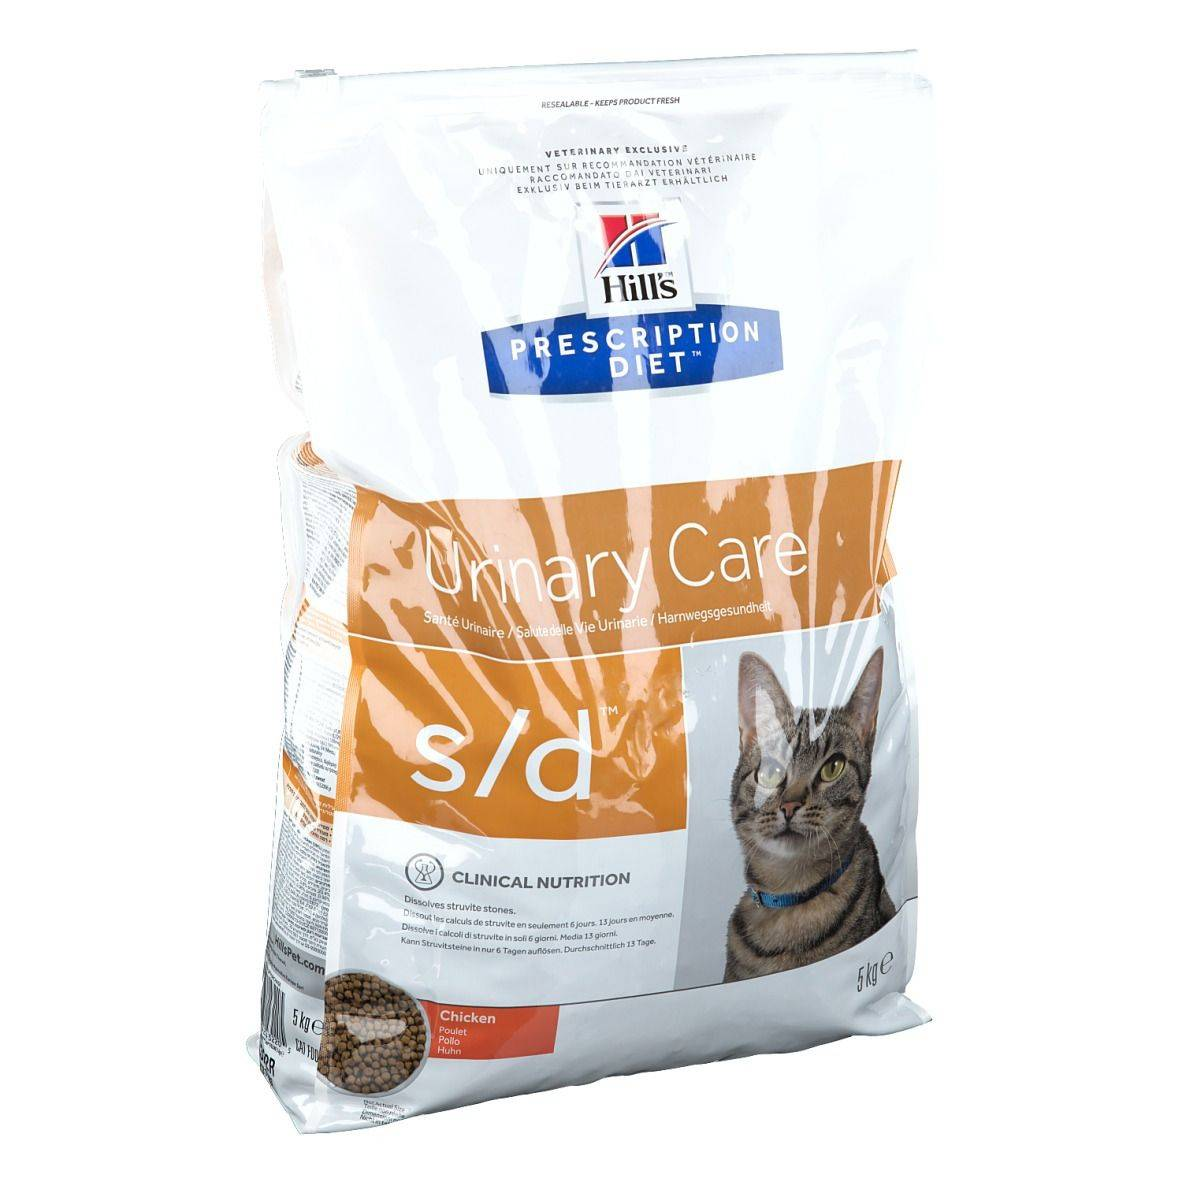 Hill's  Prescription Diet s/d Alimento per Gatti al Pollo 5 kg Impianti